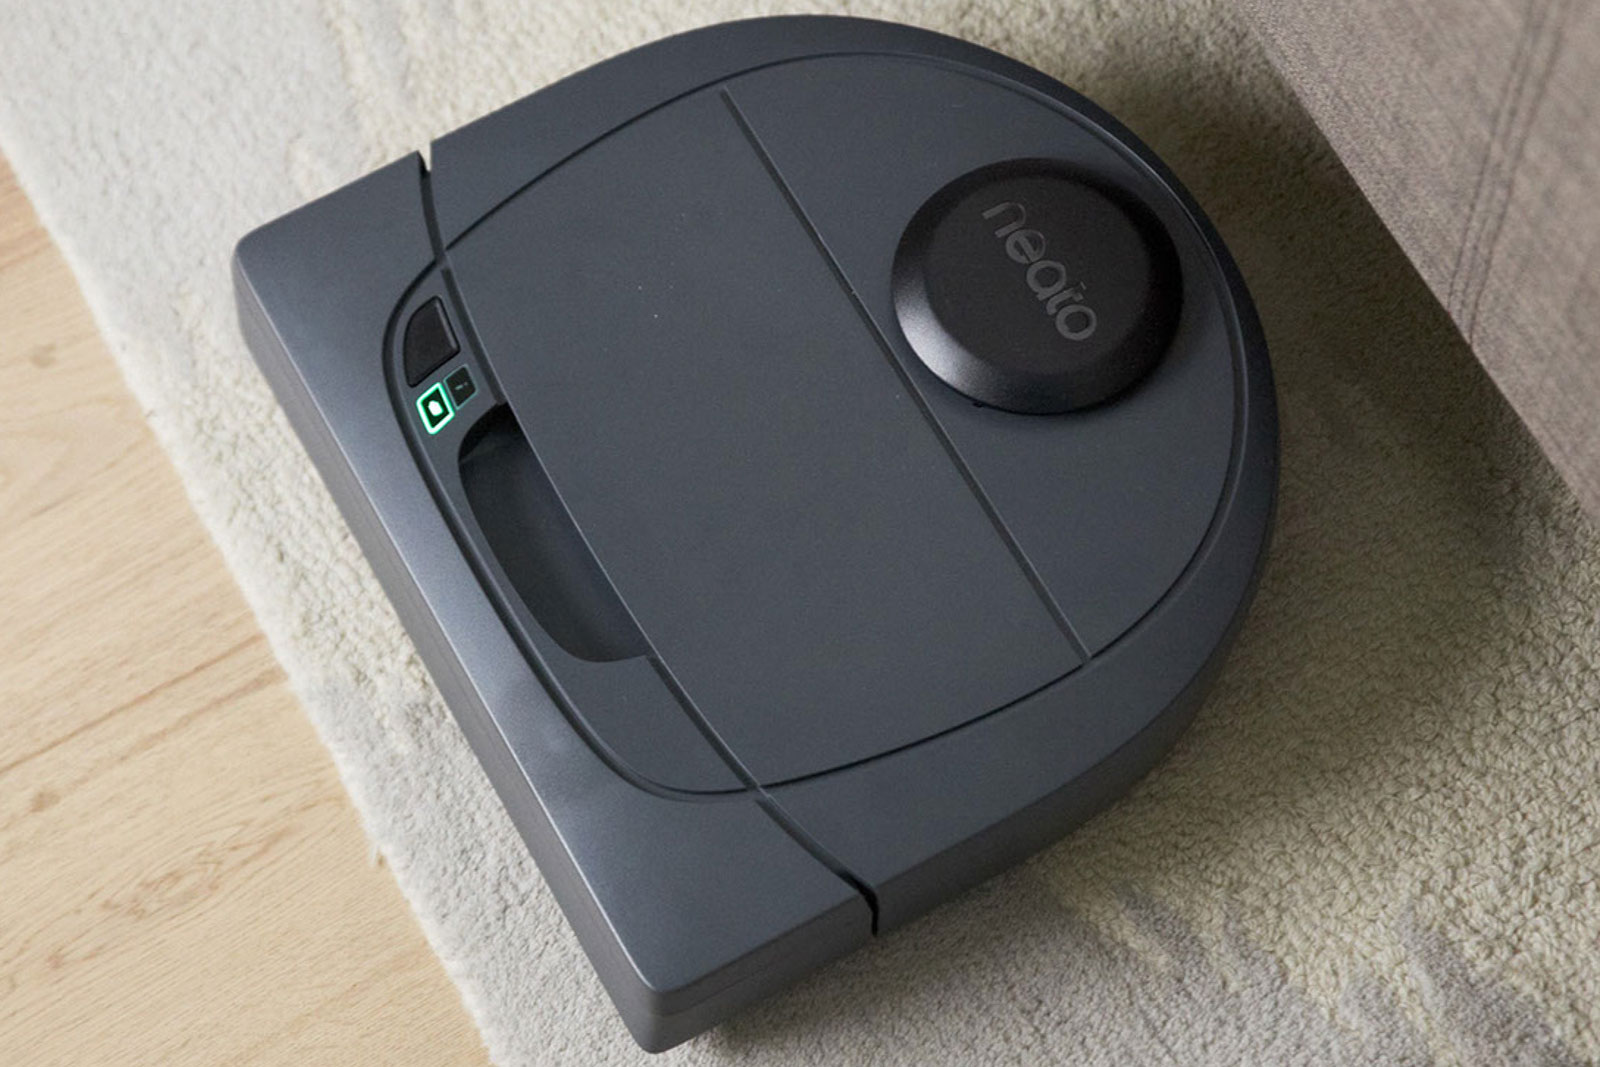 neato 39 s latest robot vacuums are much more affordable. Black Bedroom Furniture Sets. Home Design Ideas